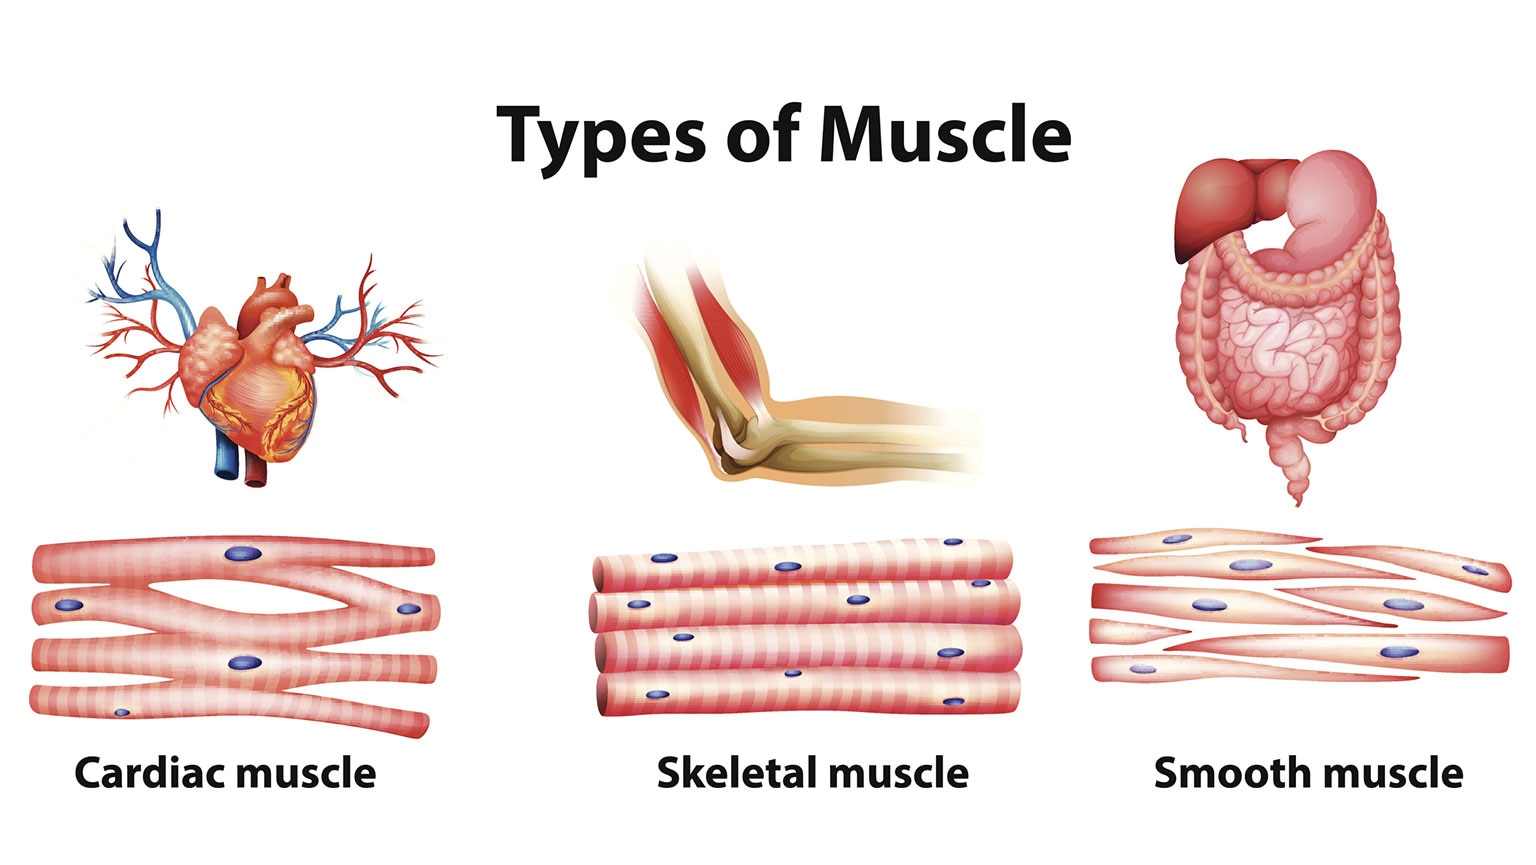 Musculoskeletal System—Anatomy of the Muscles | The Great Courses Plus